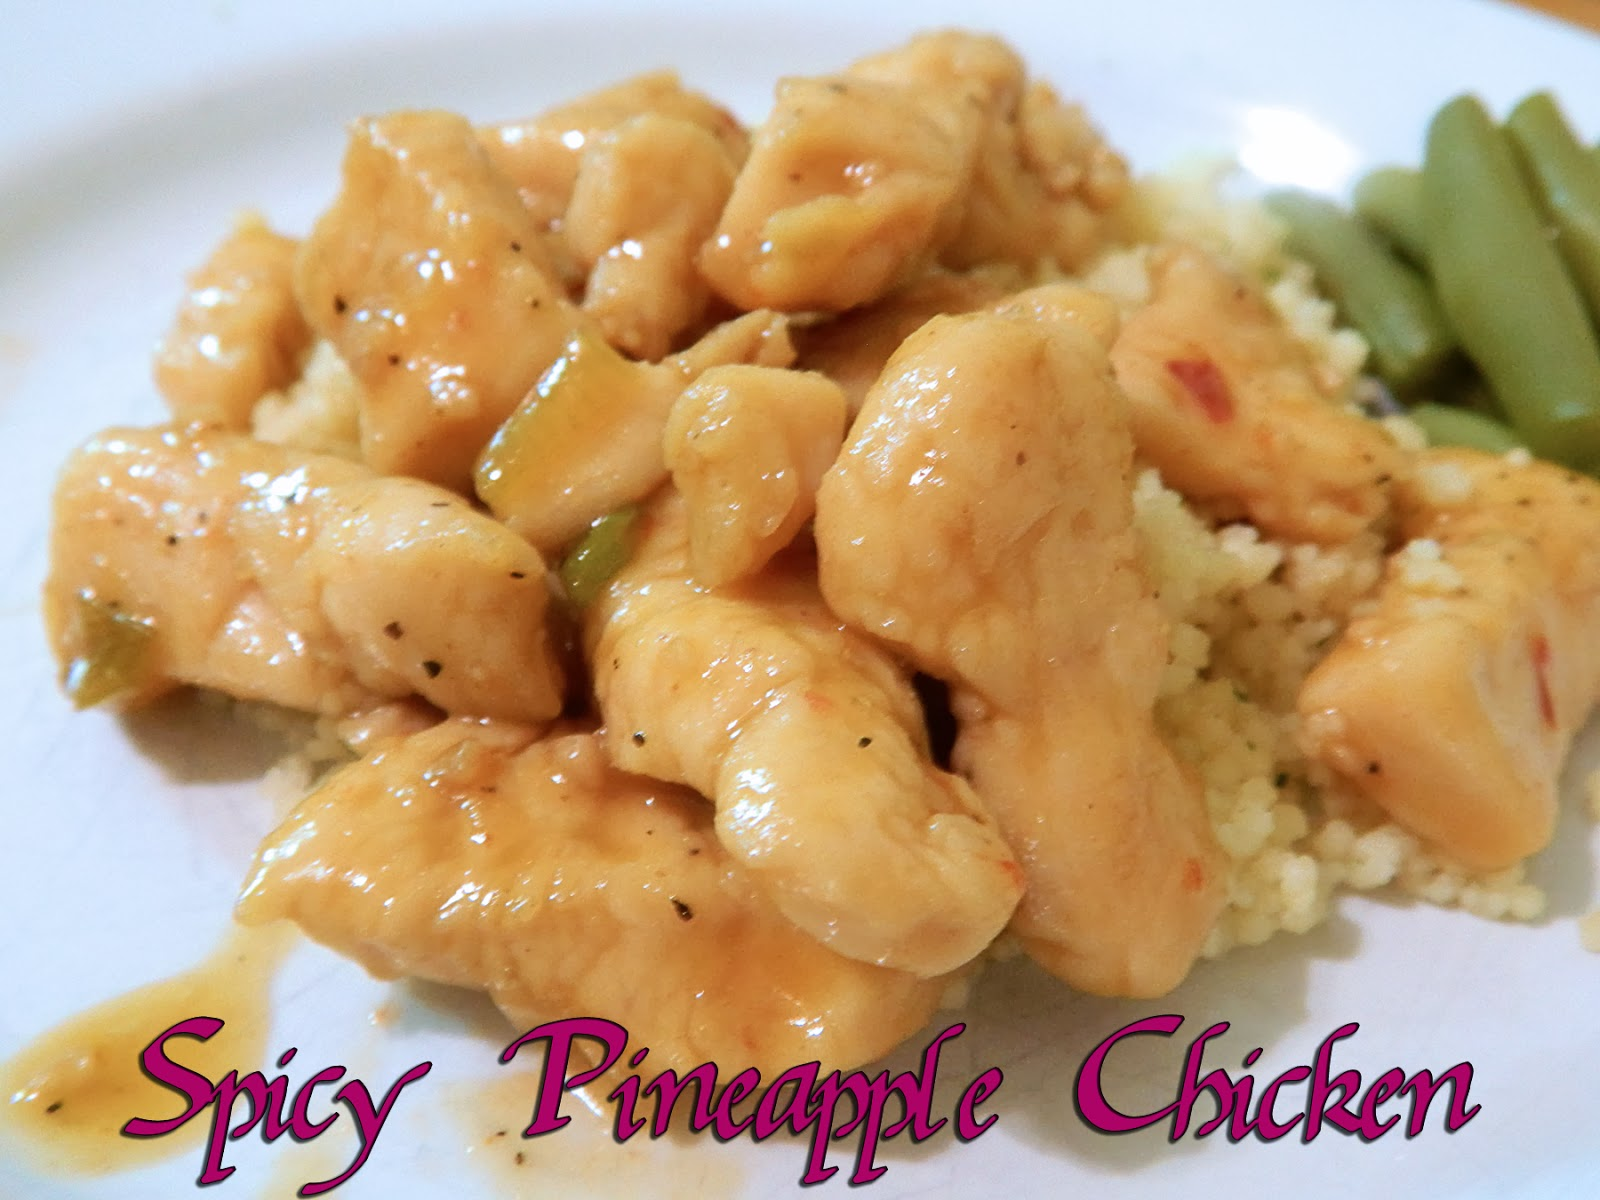 Eating Bariatric: Spicy Pineapple Chicken